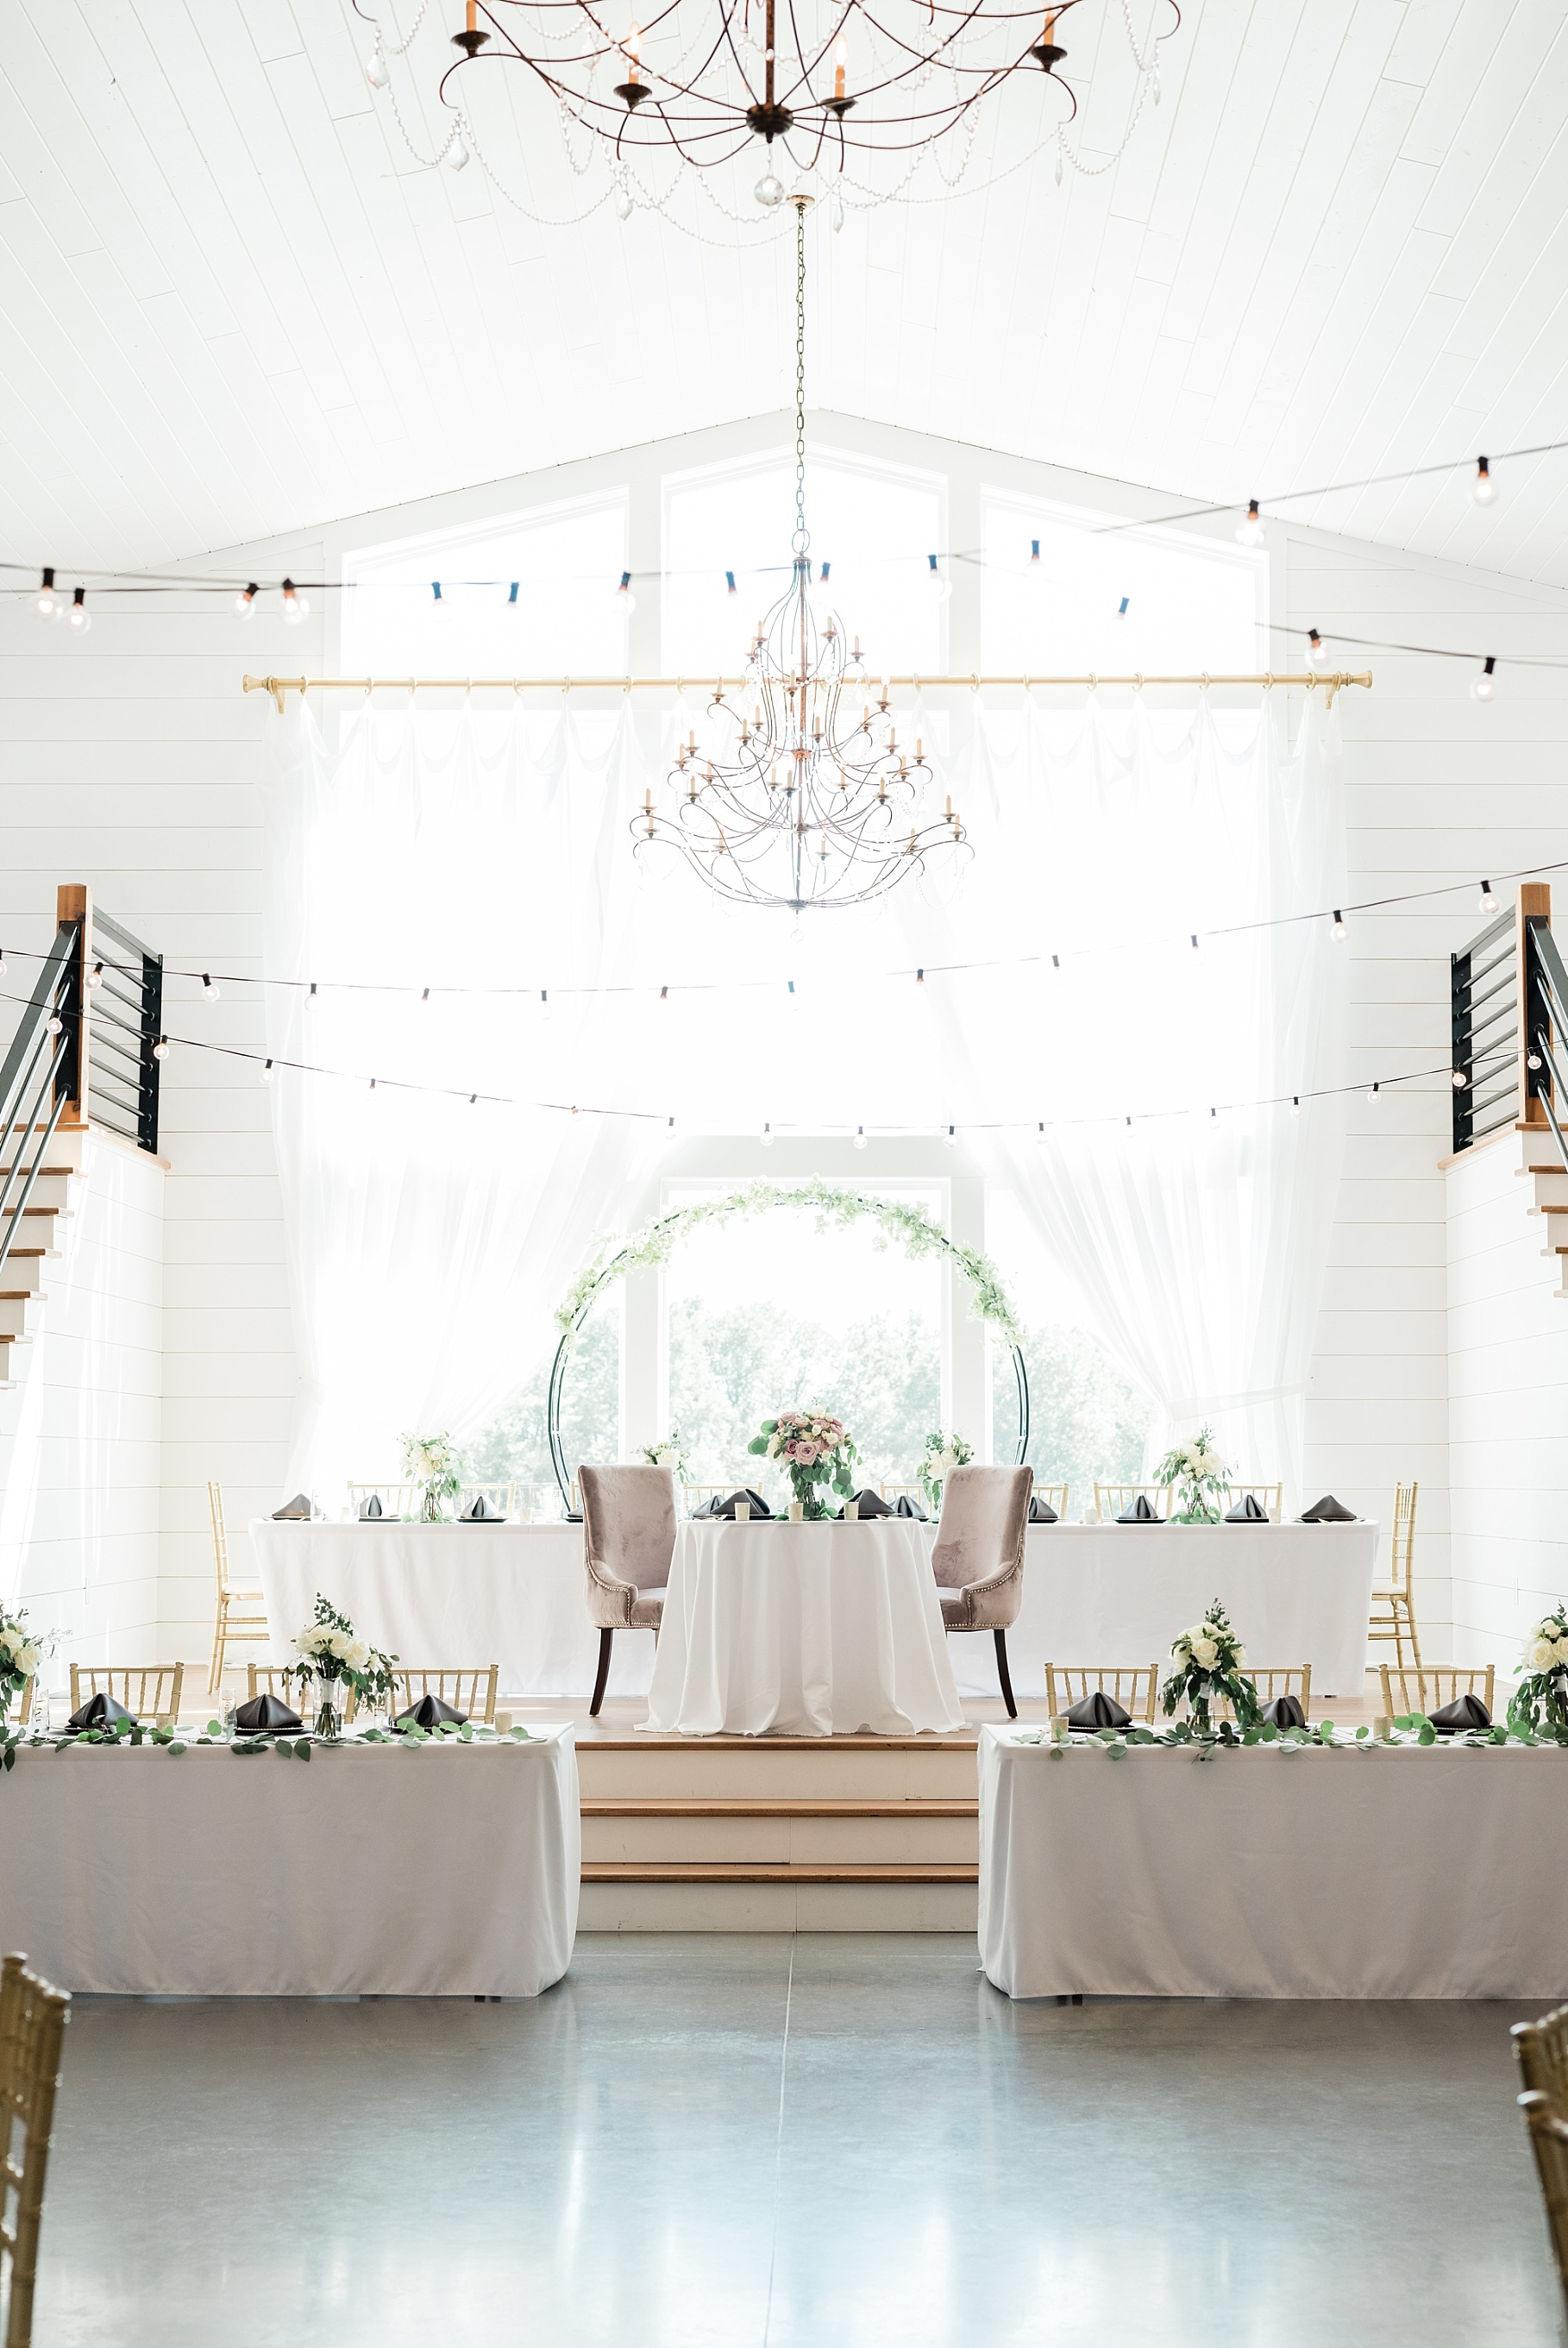 Classic Quartz, White, and Deep Green Wedding at Emerson Fields by Kelsi Kliethermes Photography Best Columbia Missouri and Maui Hawaii Wedding Photographer_0062.jpg